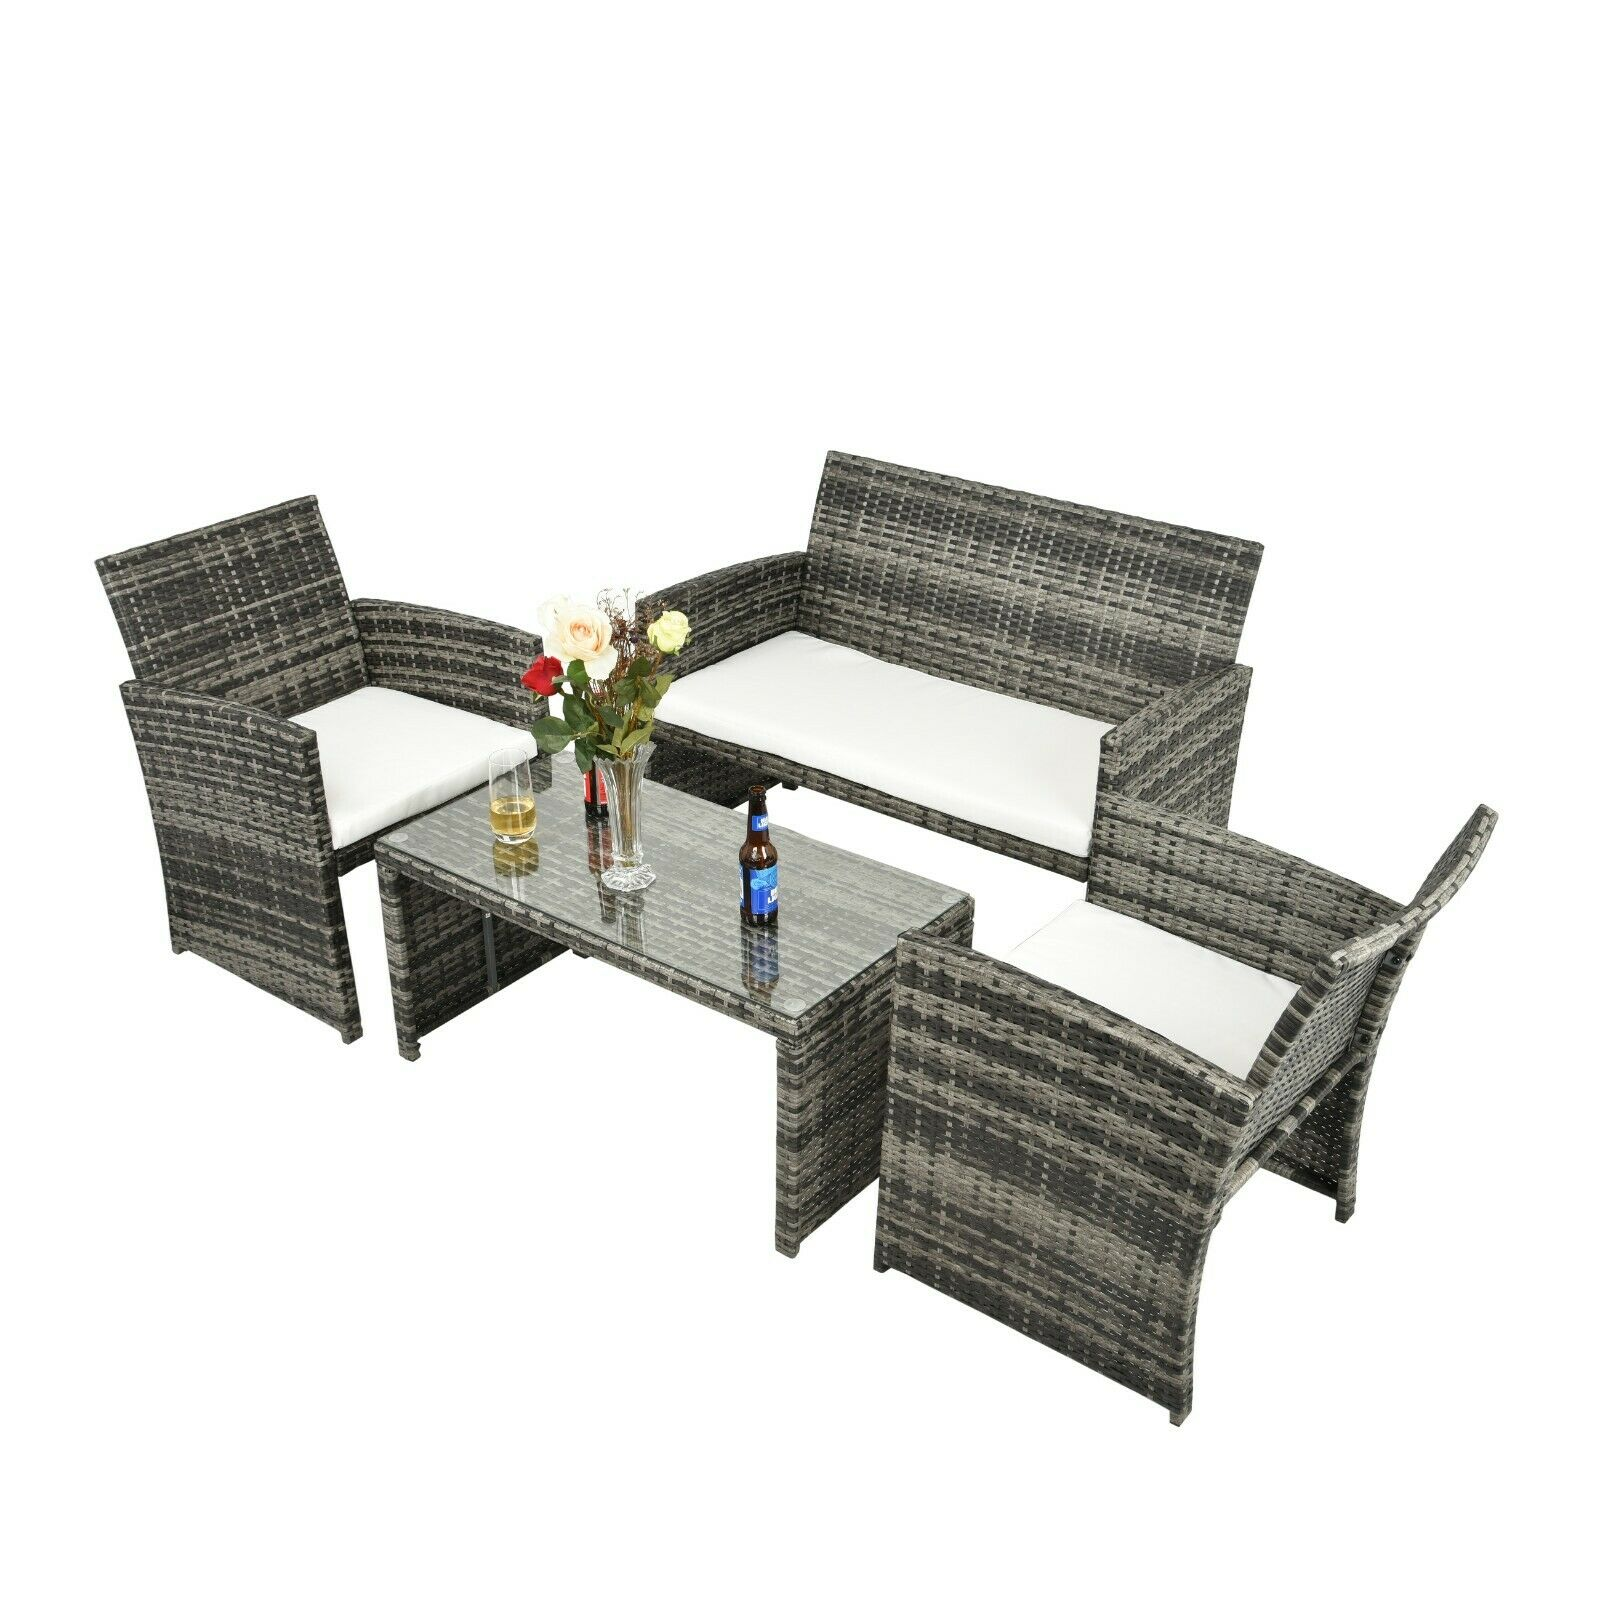 Garden Furniture - 4 PCS Outdoor Patio Rattan Wicker Furniture Sets Garden Balcony Cushioned Sofa